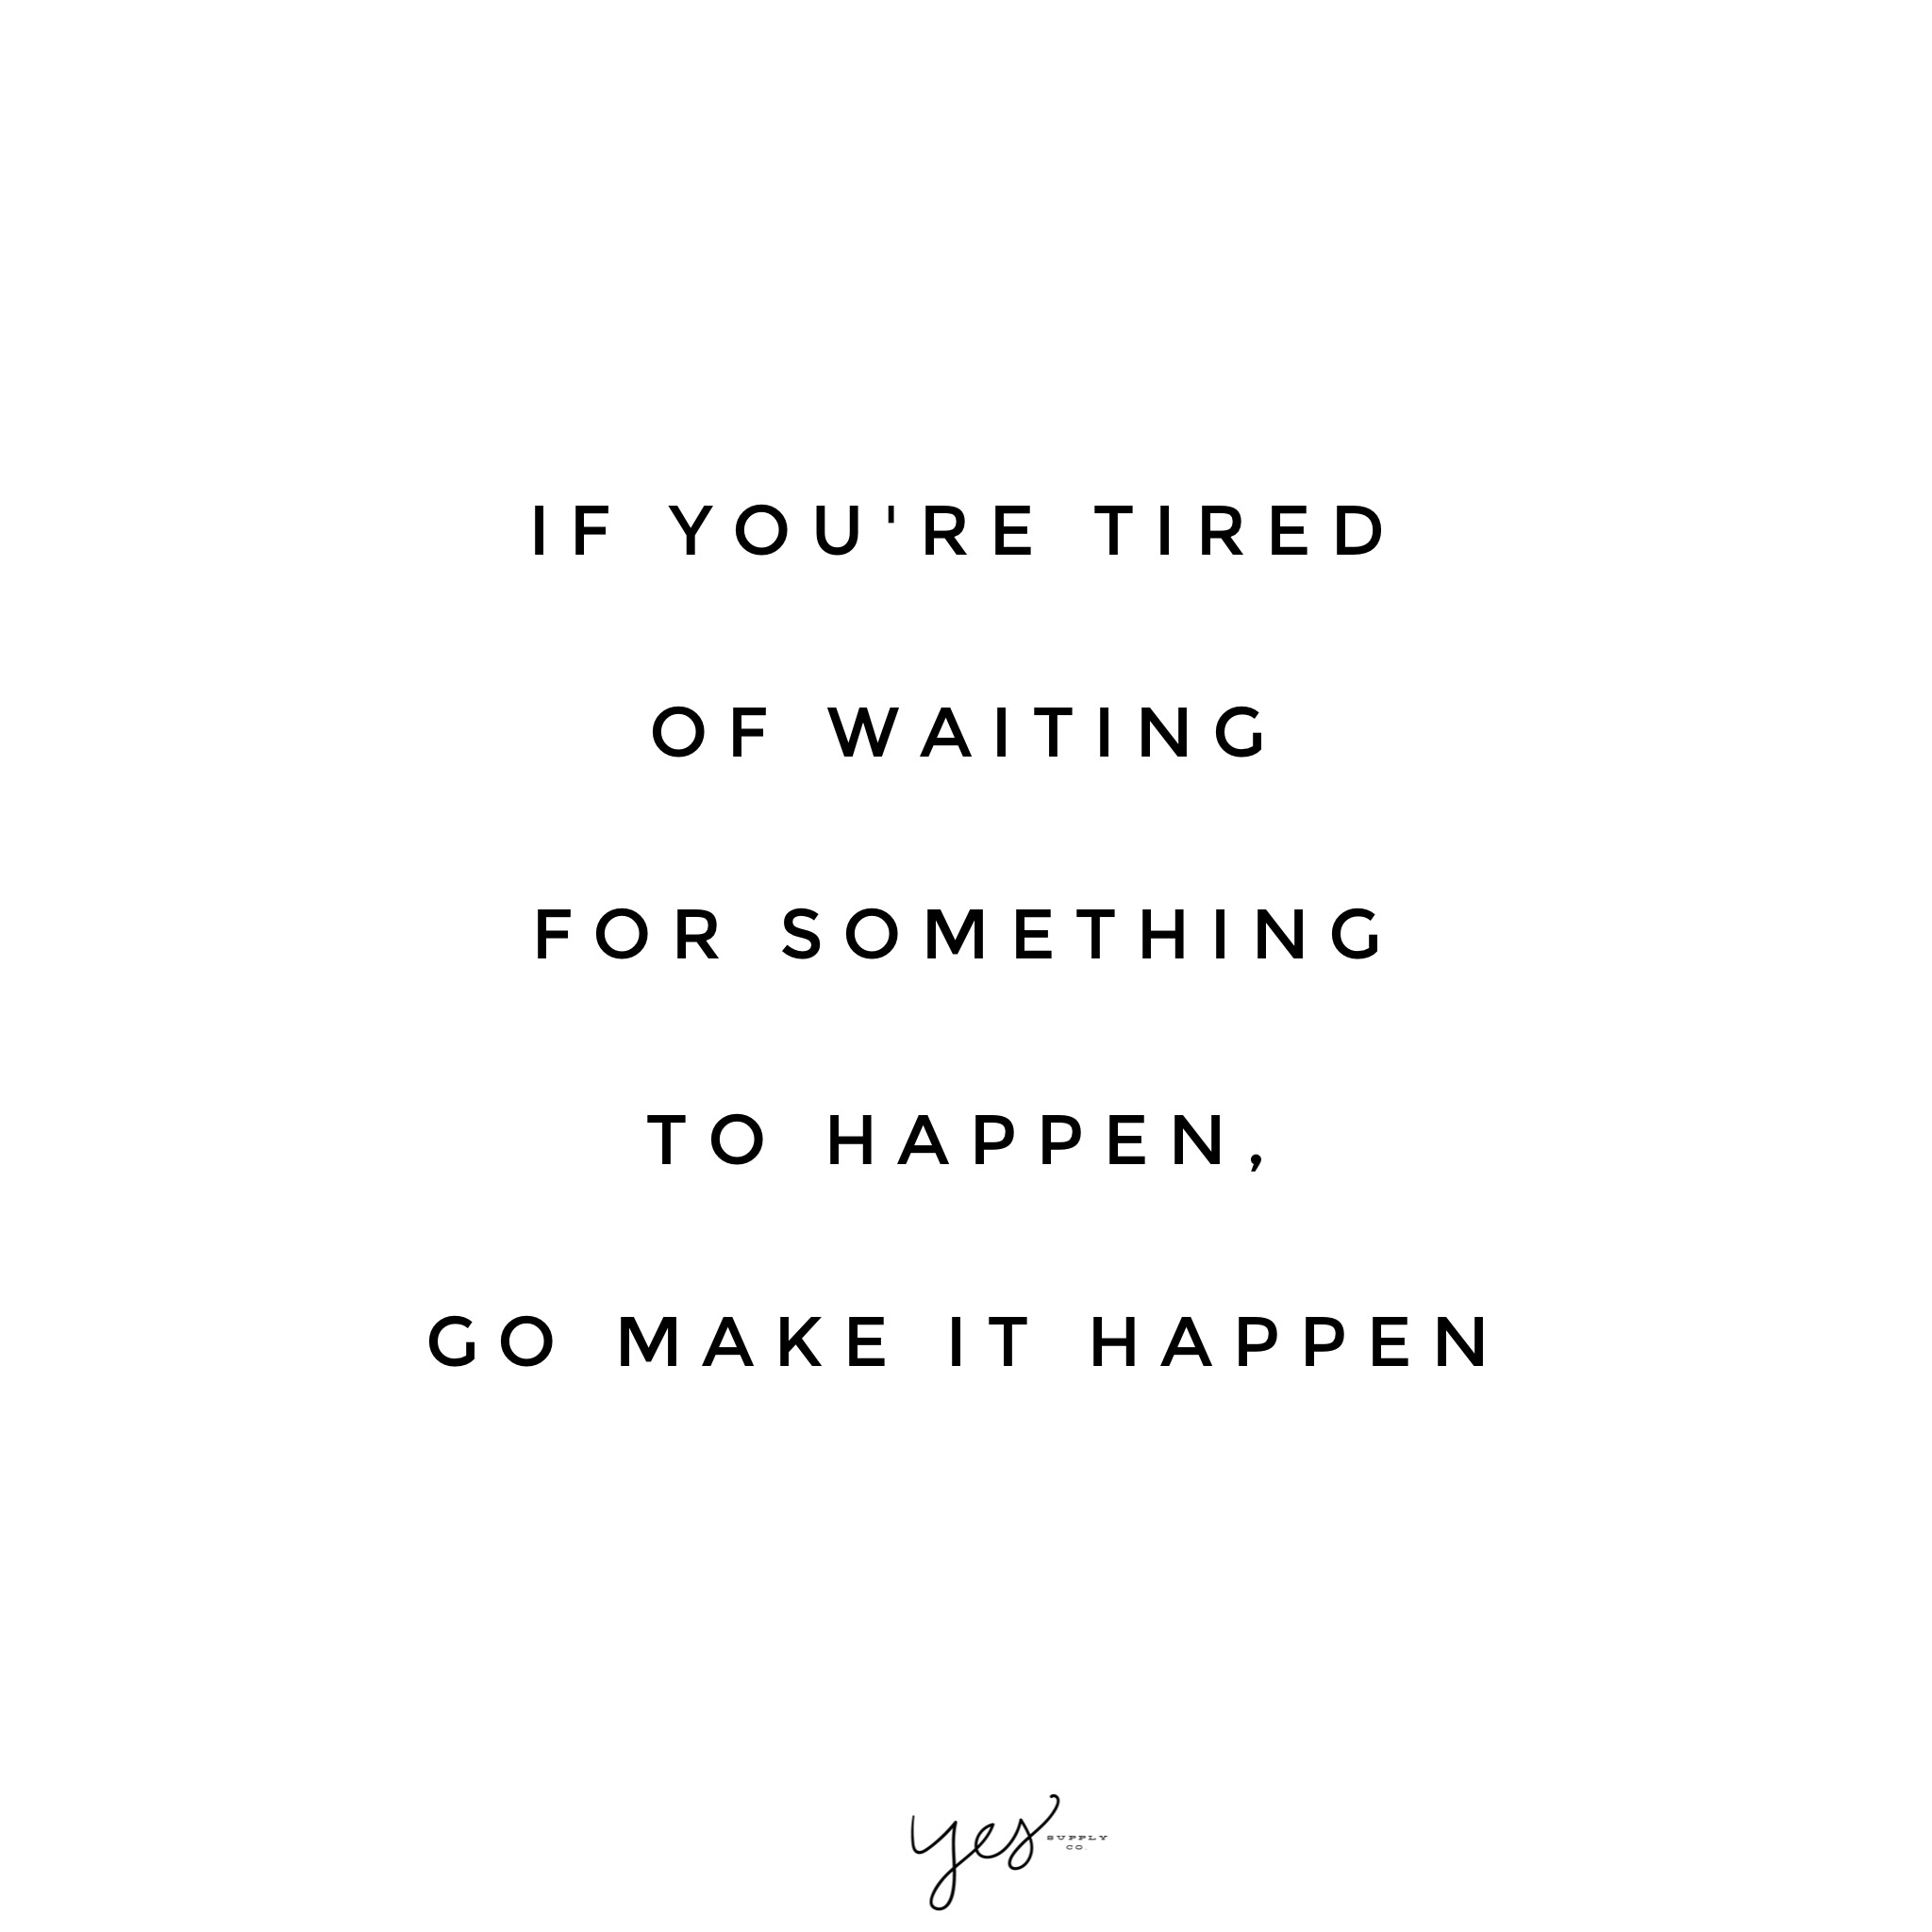 If Youre Tired Of Waiting For Something To Happen Go Make It Happen